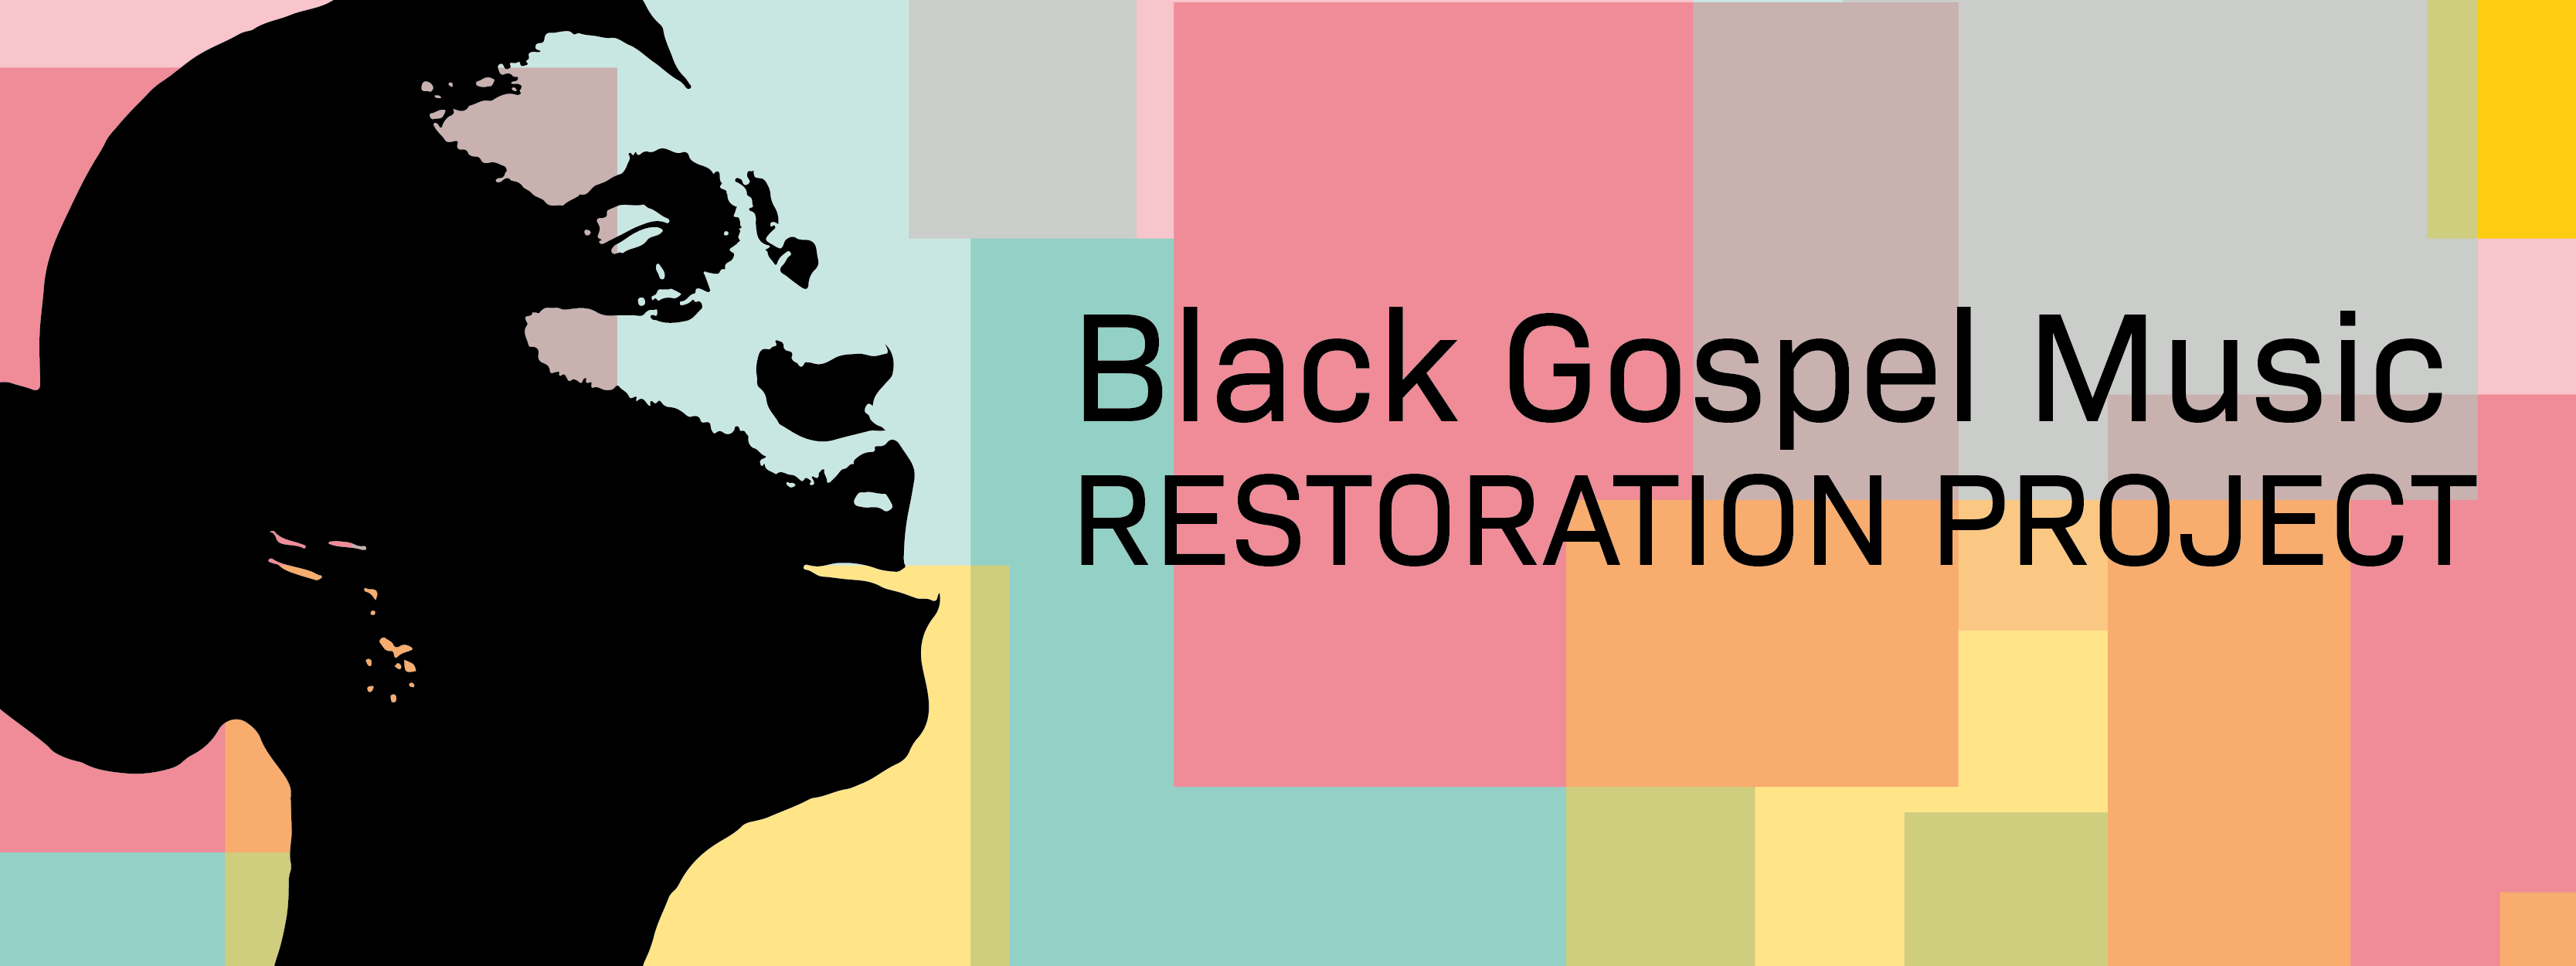 About the Black Gospel Music Restoration Project Banner